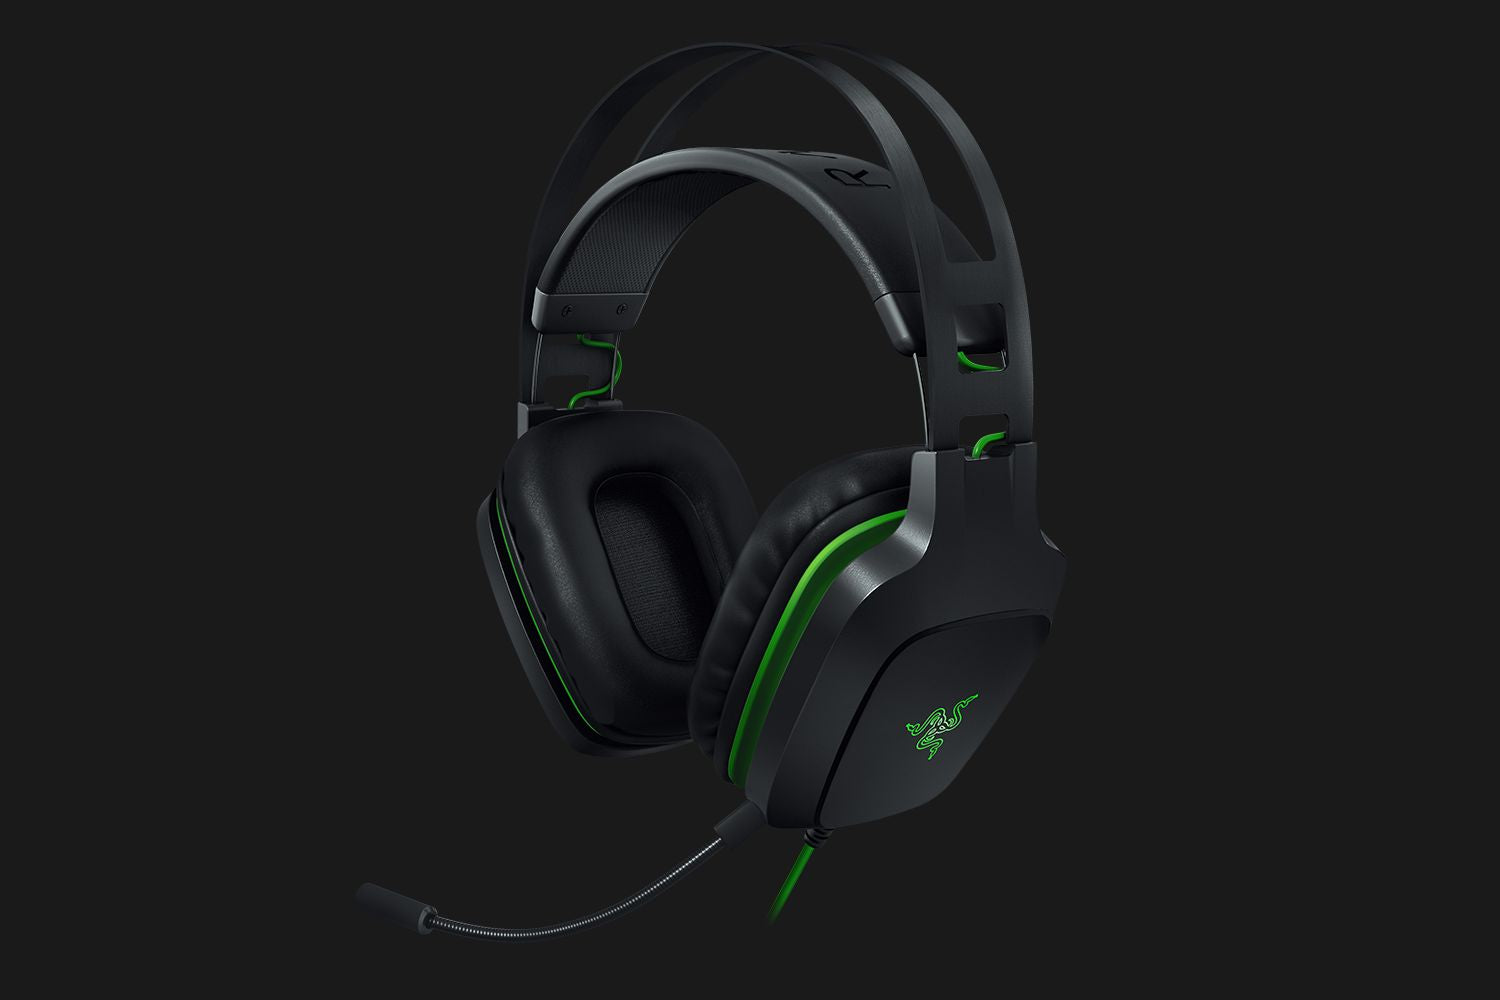 Razer Electra V2 USB – Digital Gaming and Music Headset - RZ04-02220100-R3M1-computerspace